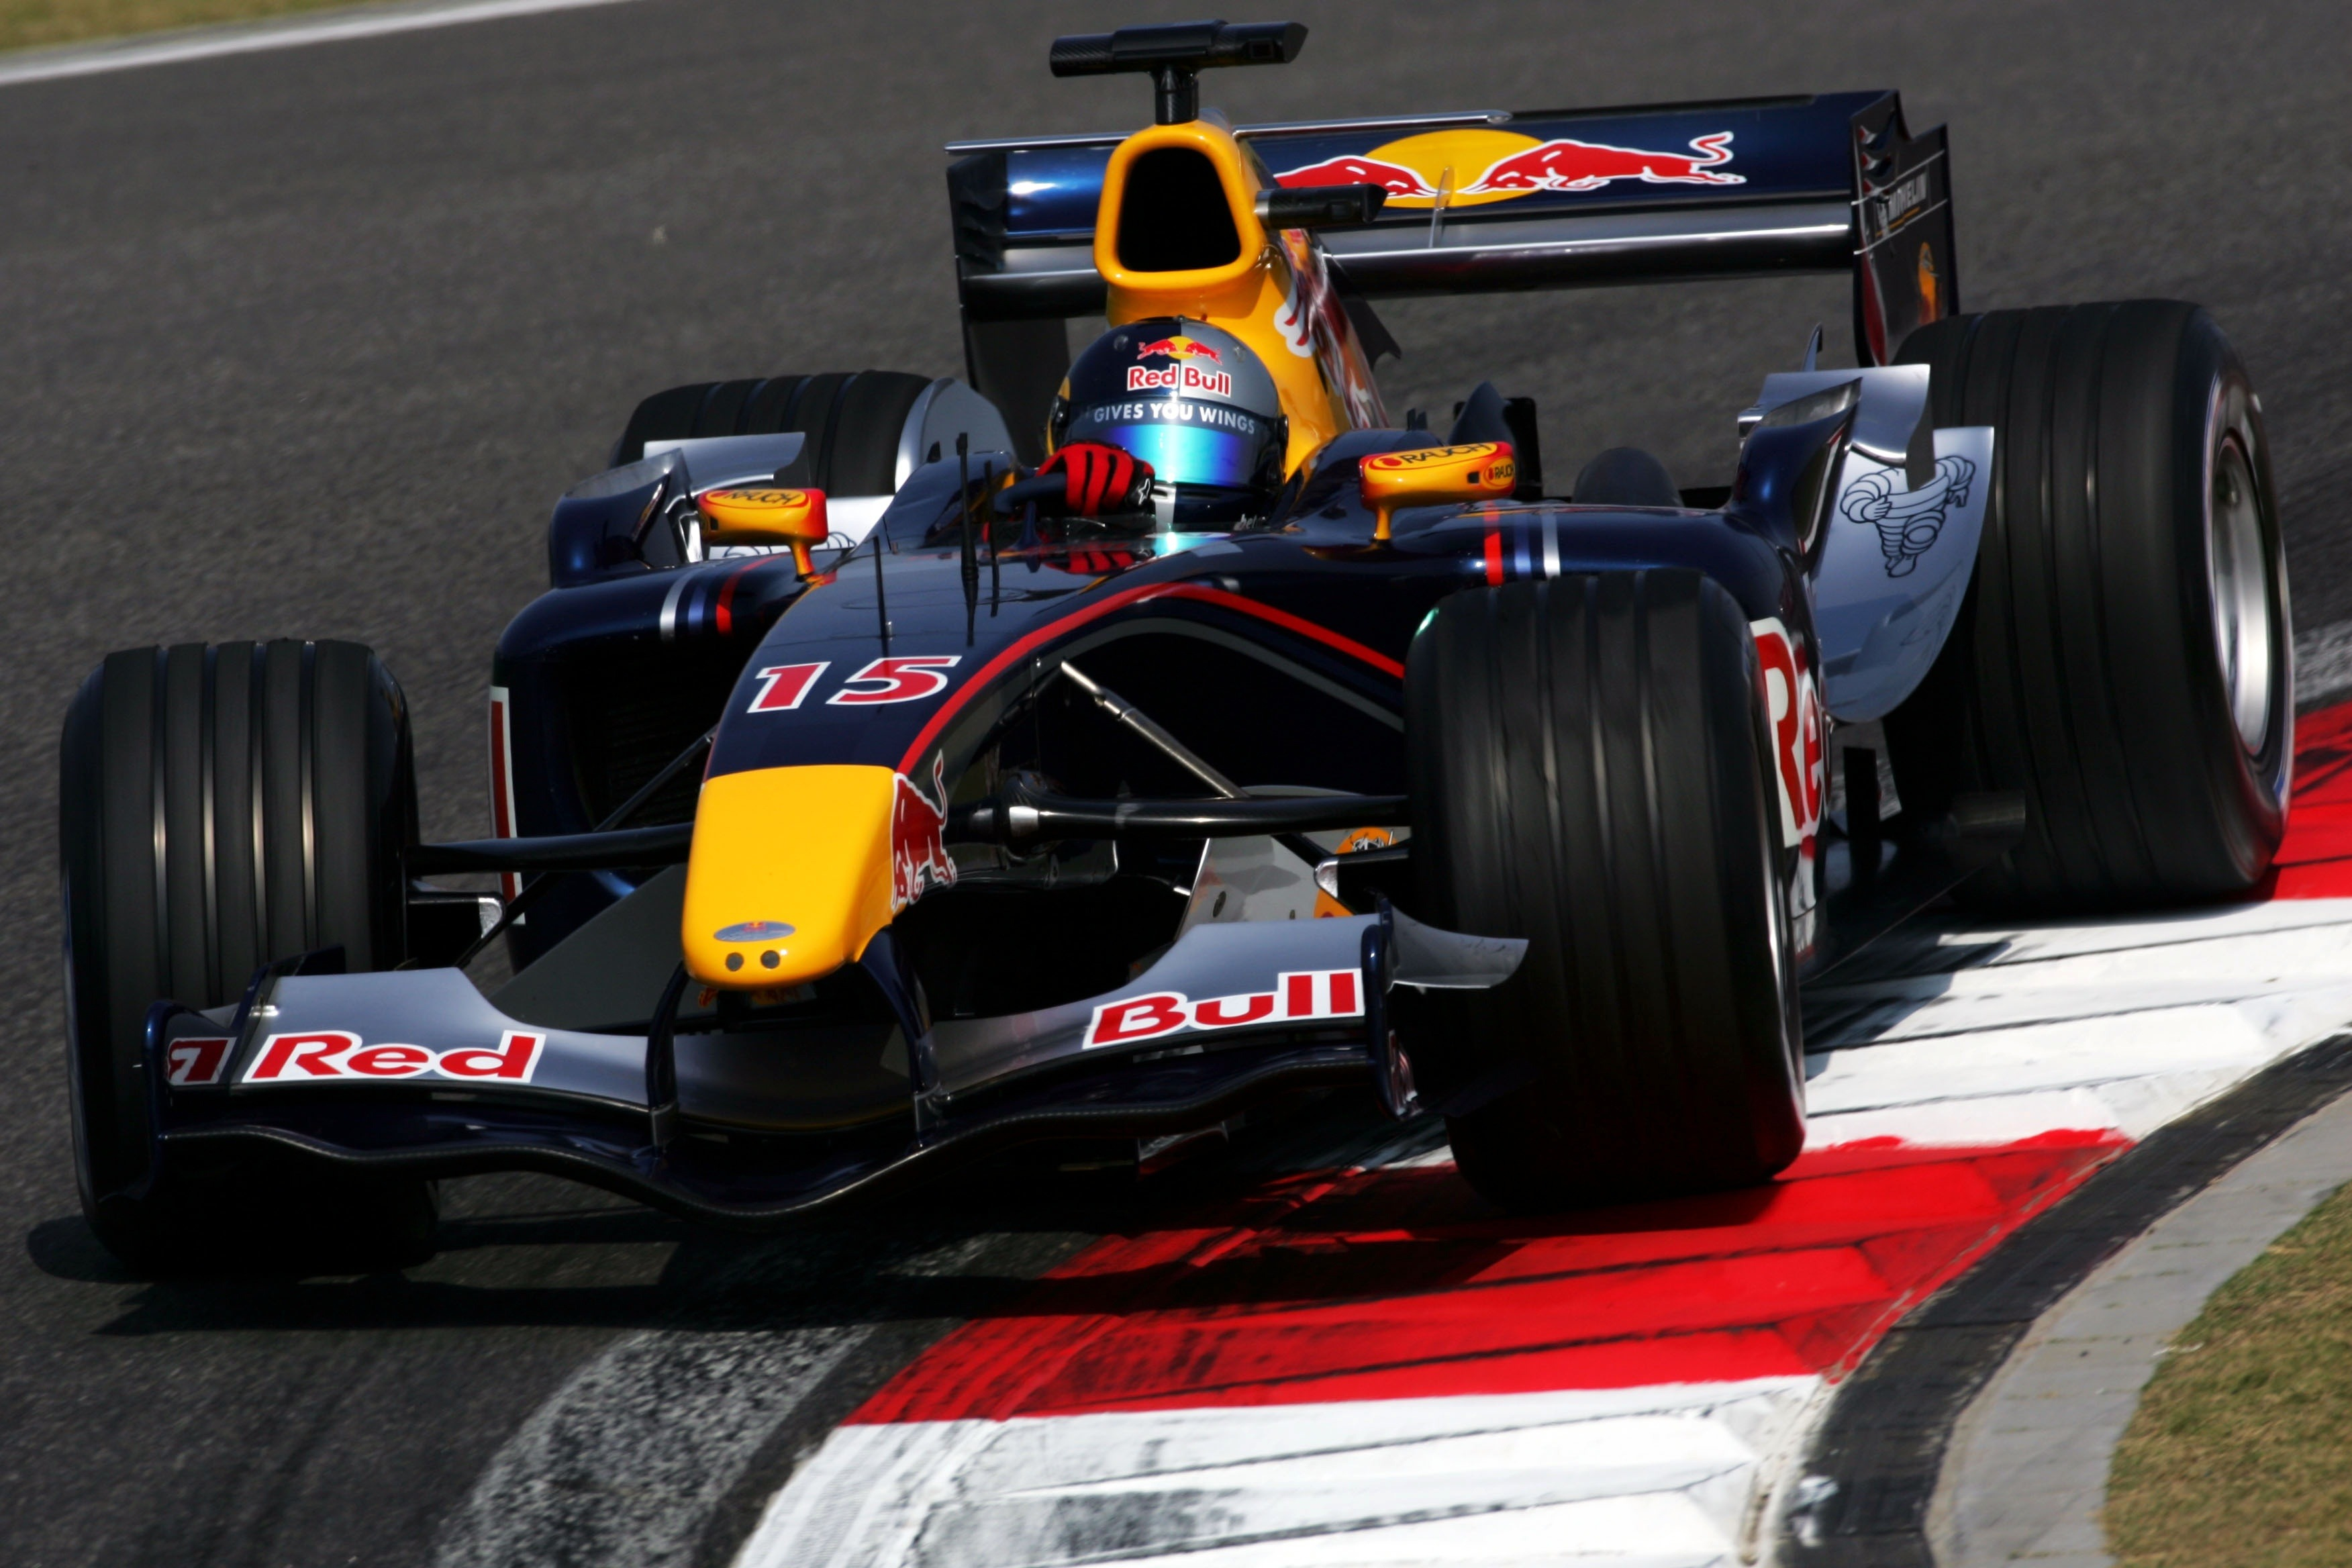 Christian Klien 2005 Chinese Grand Prix, Red Bull